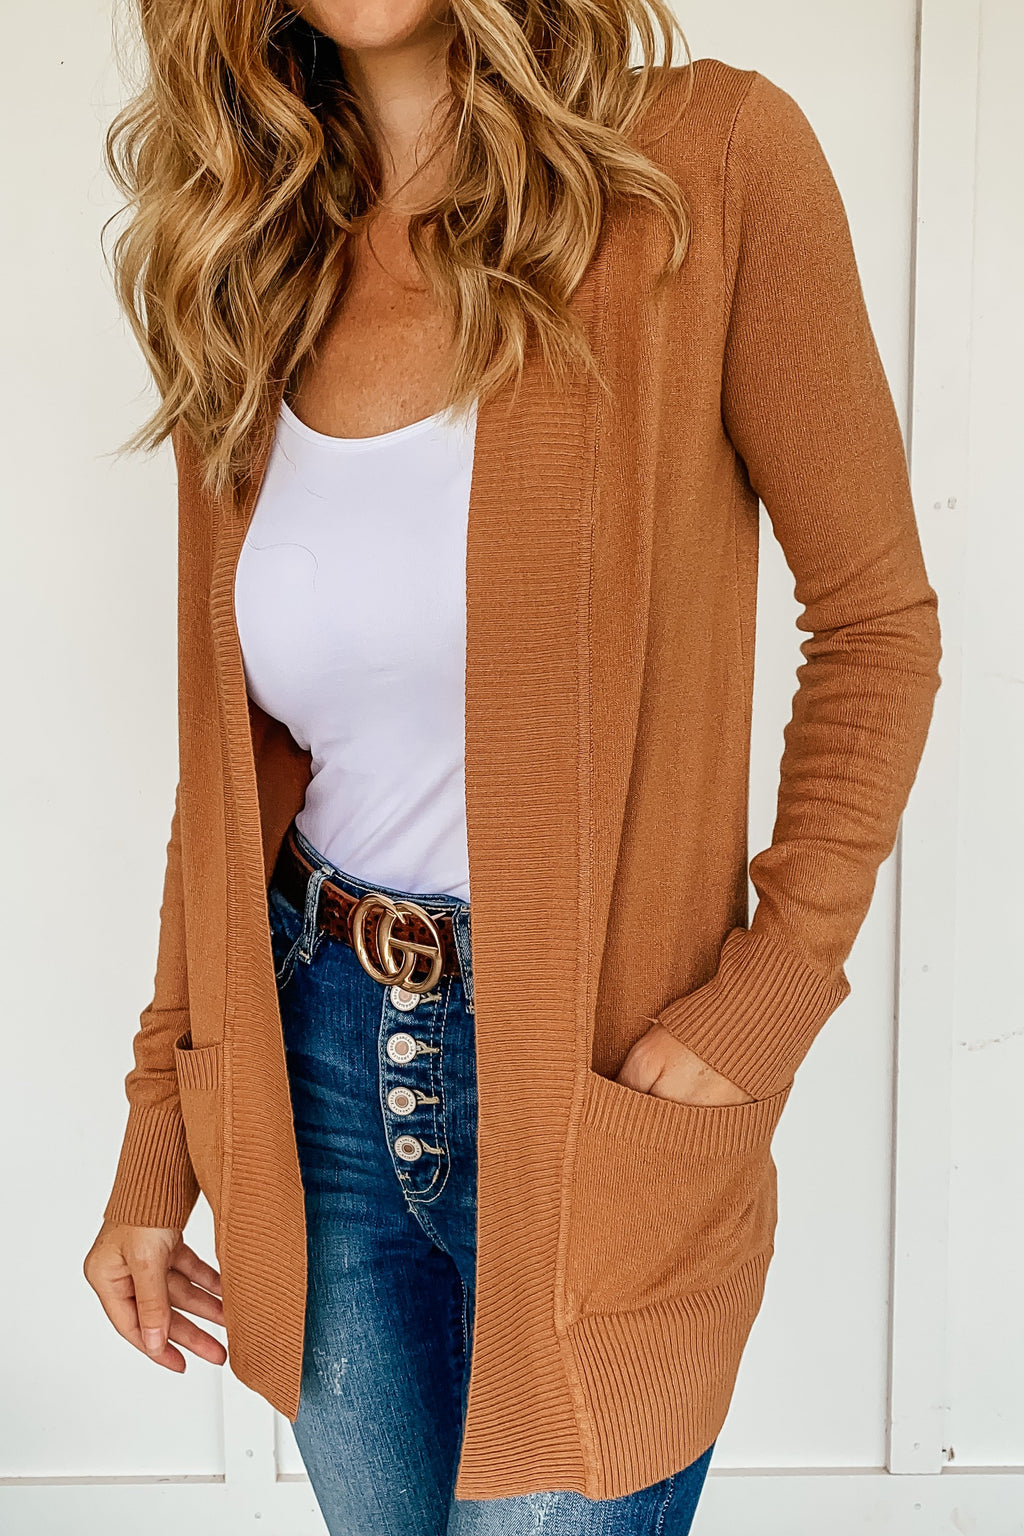 The Phoebe Cardigan in Camel